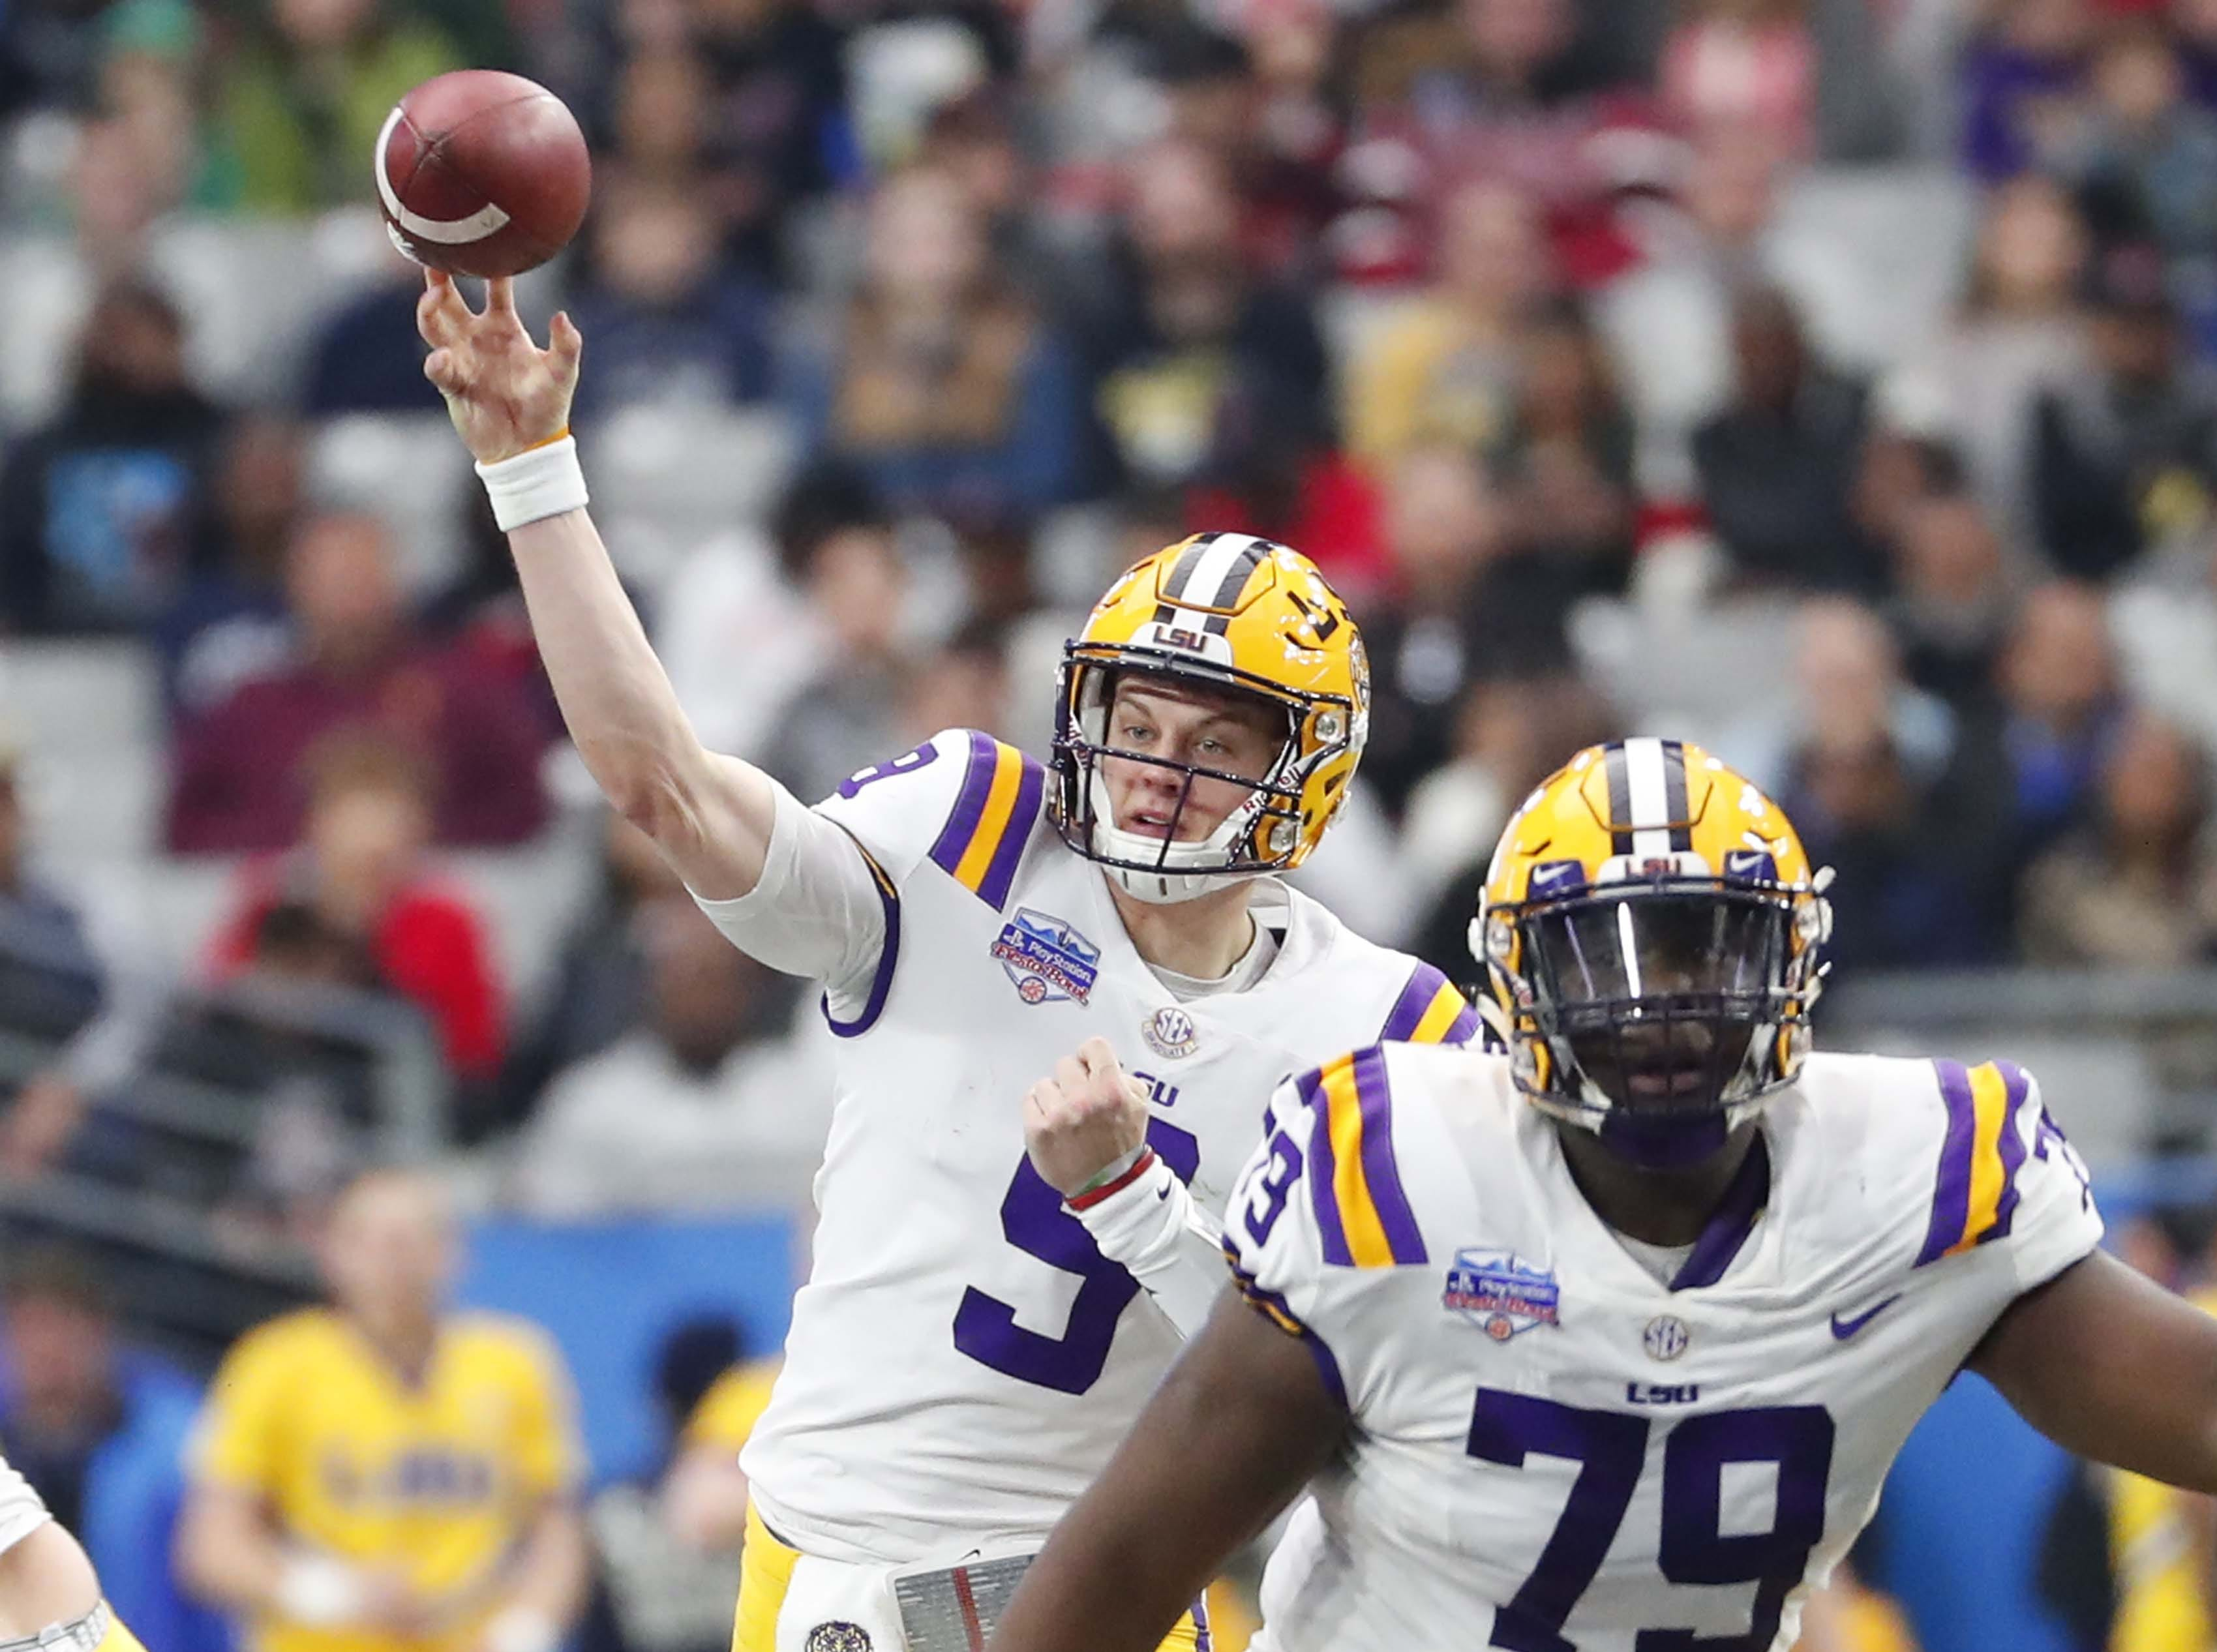 LSU quarterback Joe Burrow (9) throws against UCF during the Fiesta Bowl in Glendale January 1, 2019.